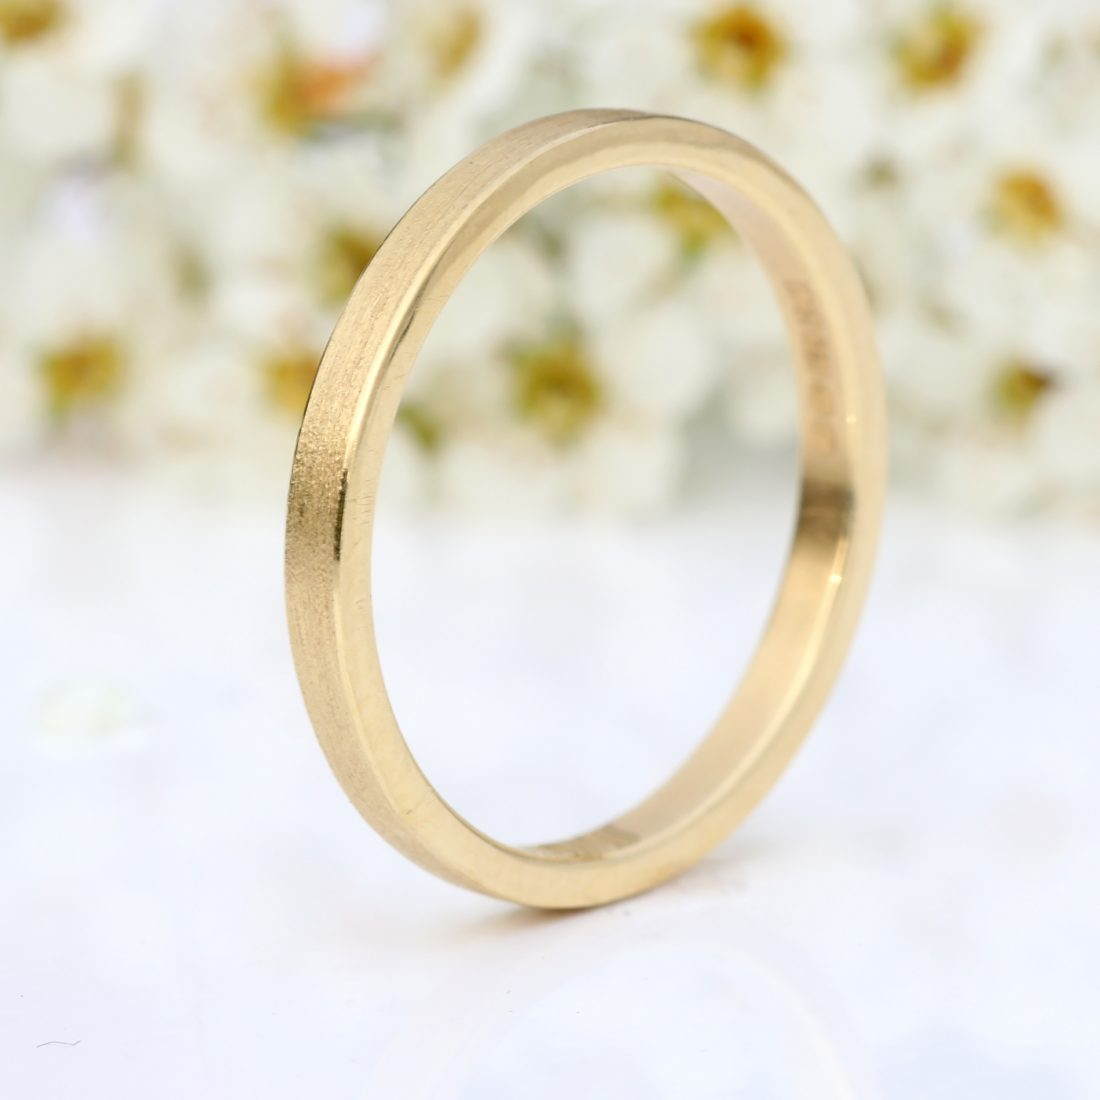 2mm slim flat gold wedding ring